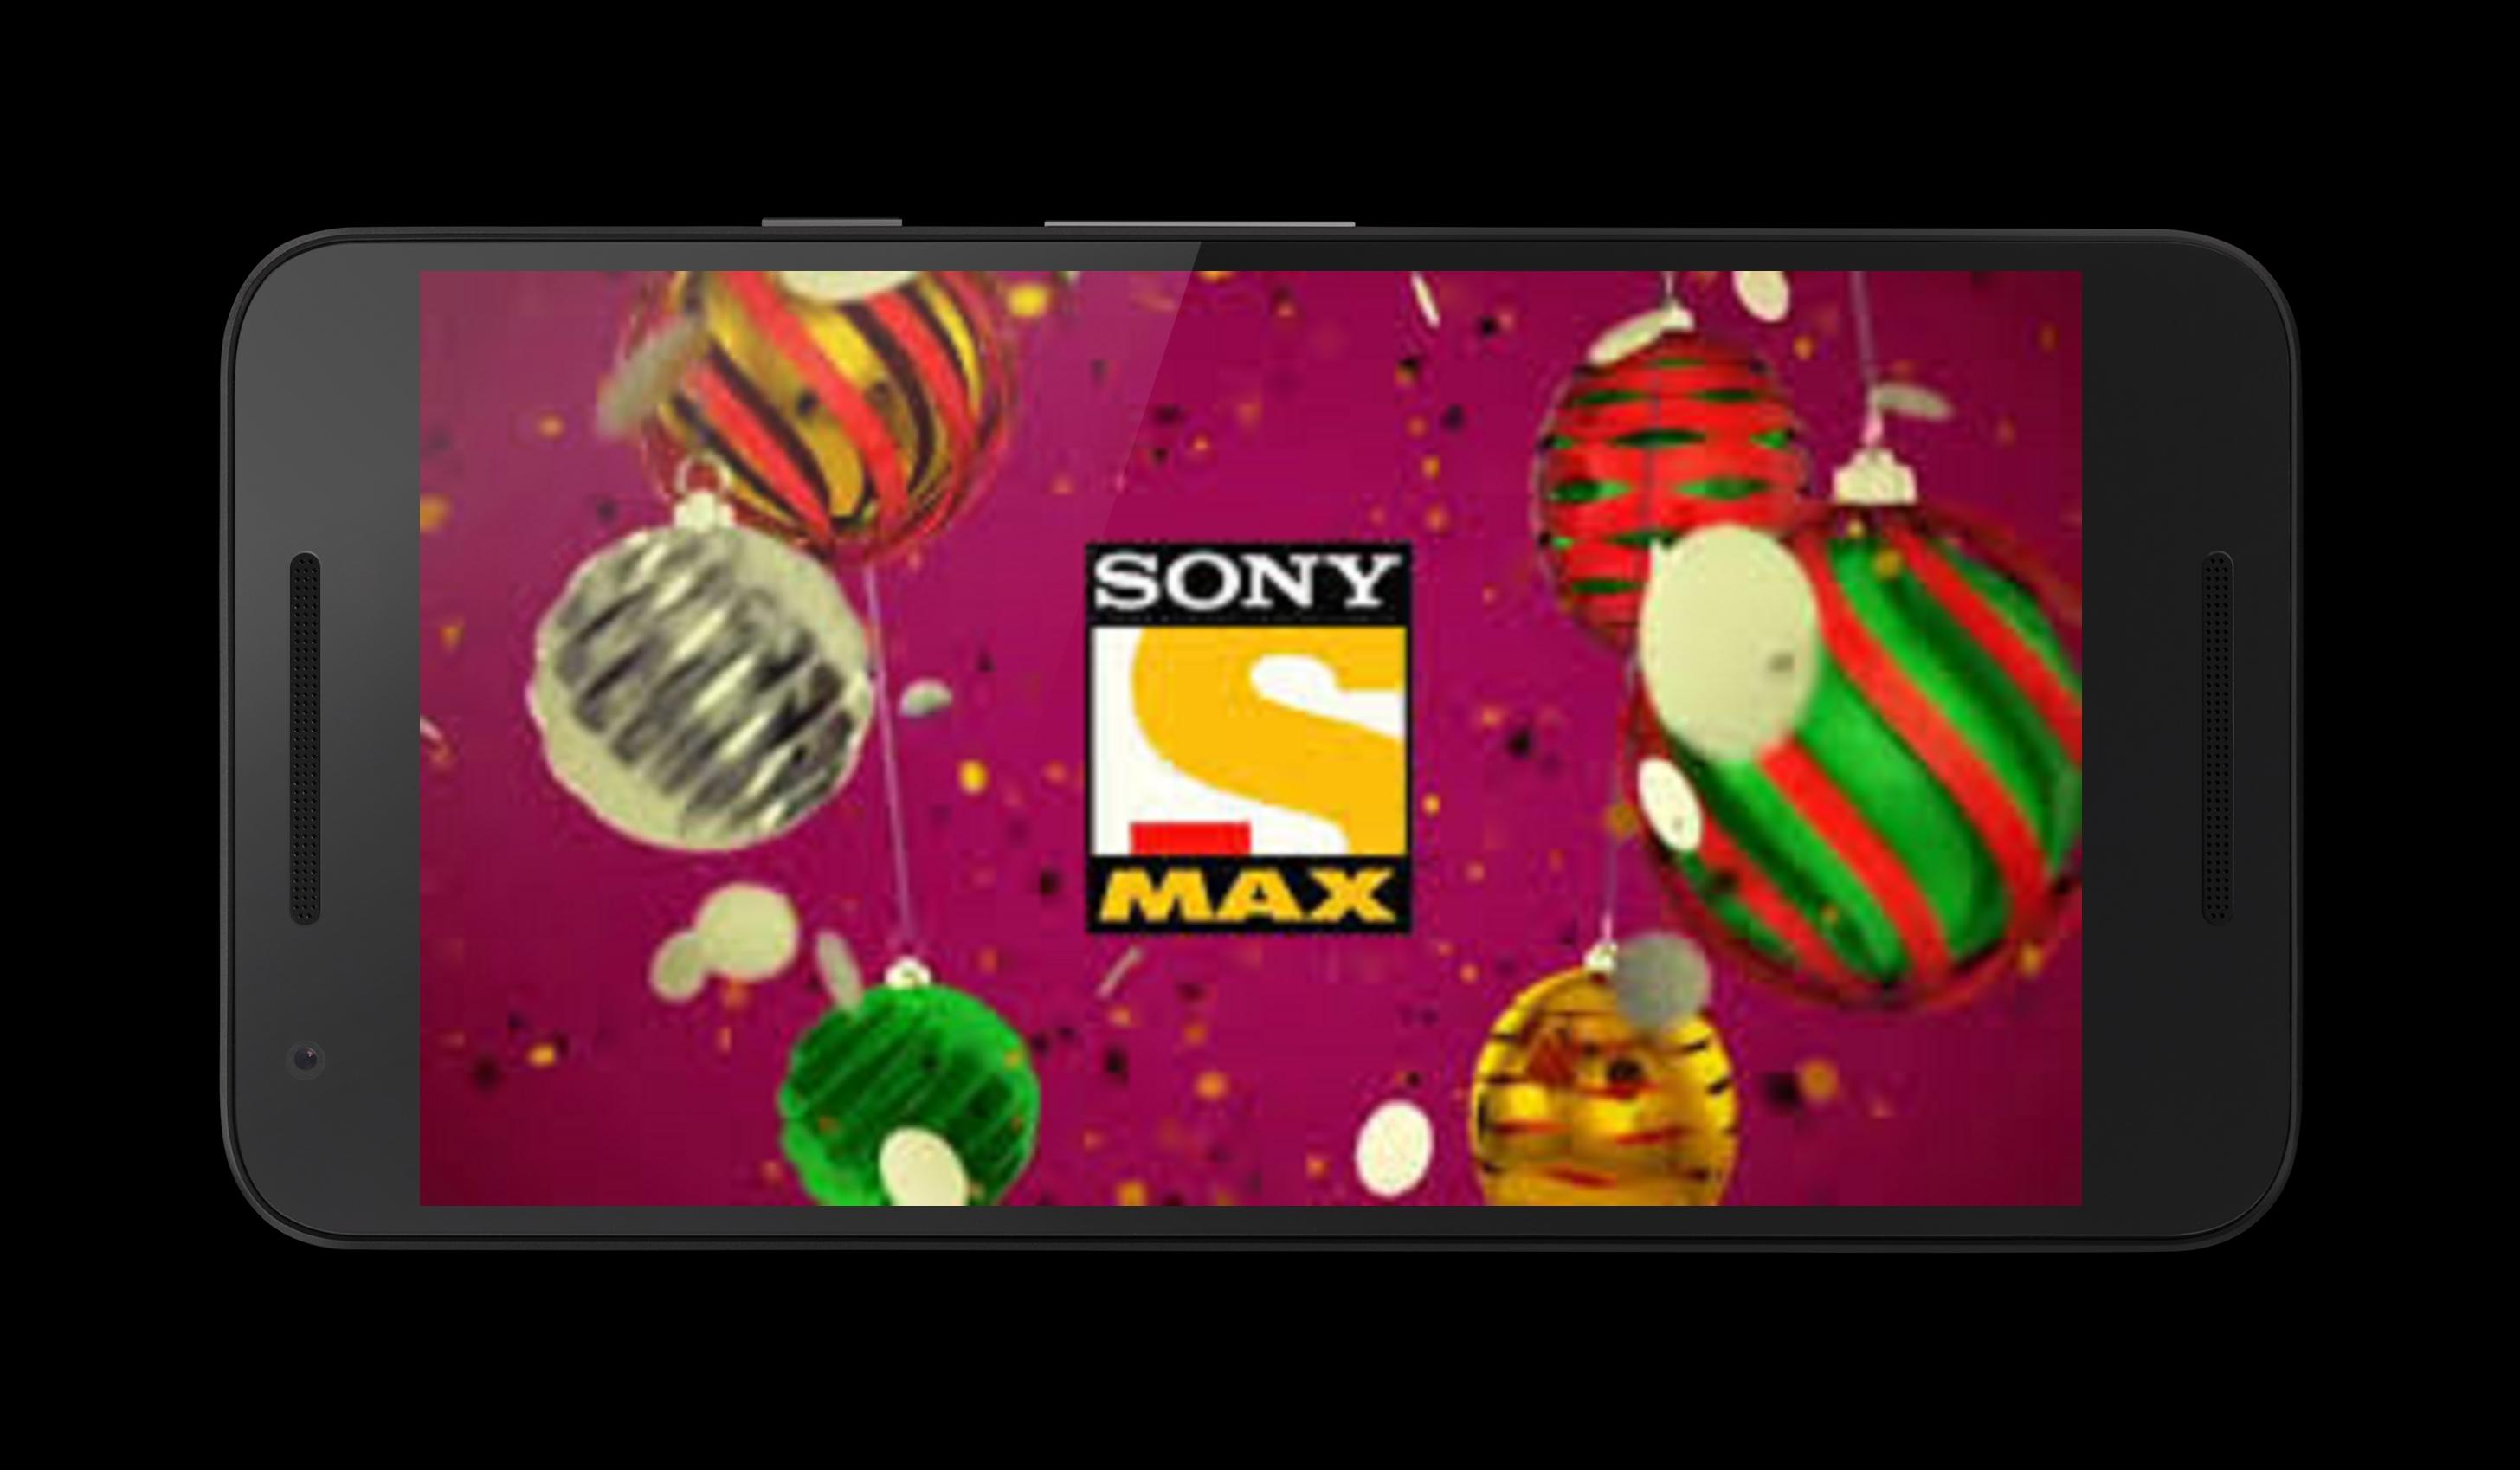 Sony Max TV for Android - APK Download